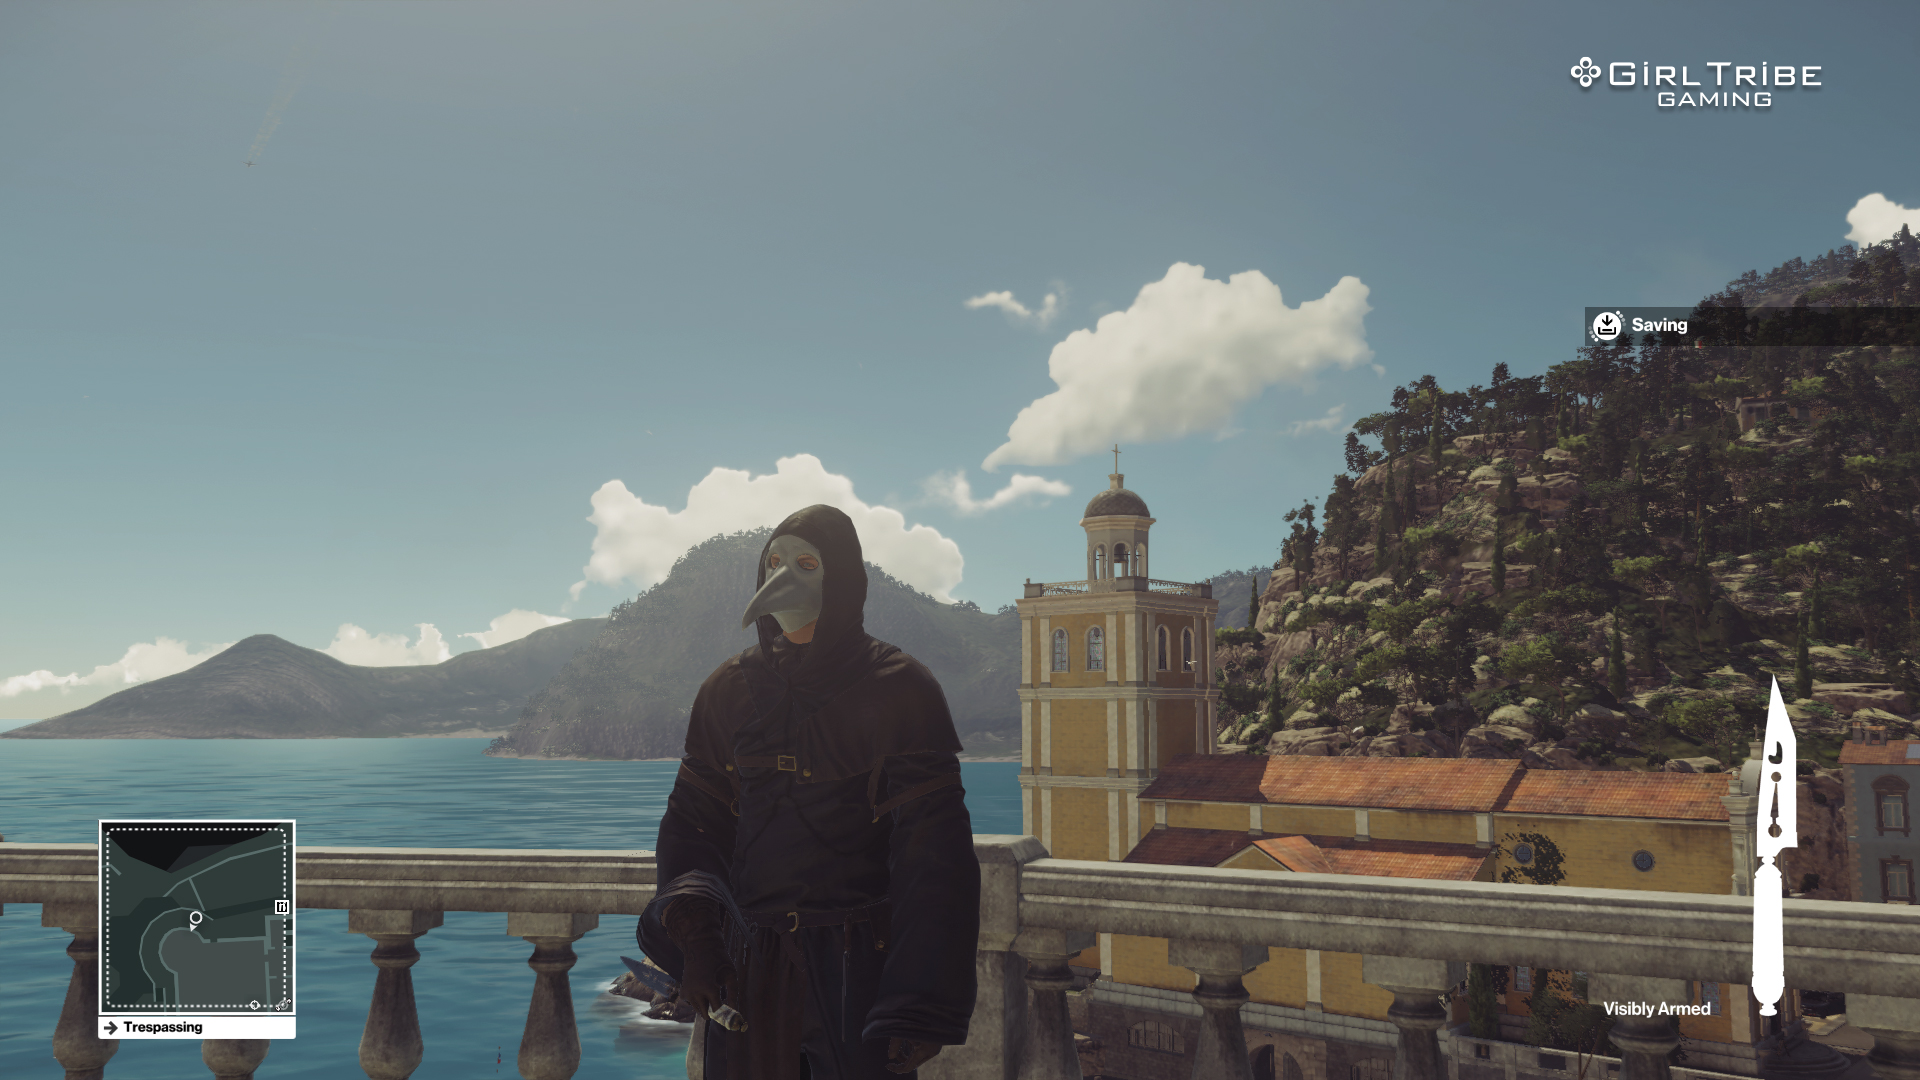 Hitman-ep-2-Screenshot-1-wb.jpg